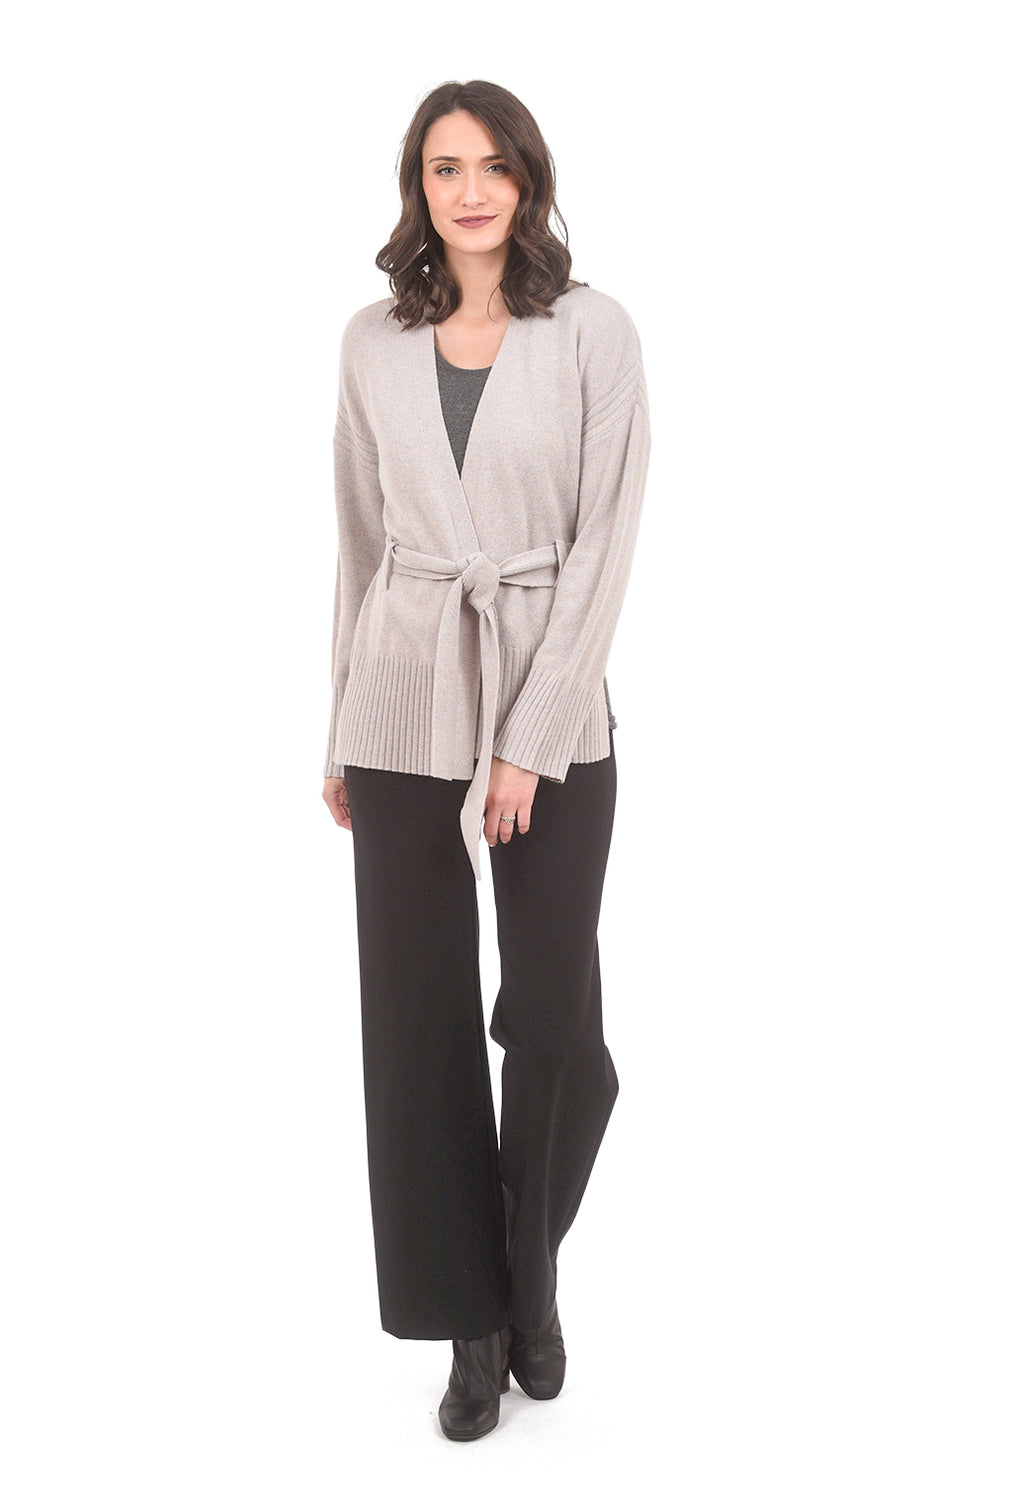 Margaret O'Leary Knits Cece Kimono Cardie, Marble